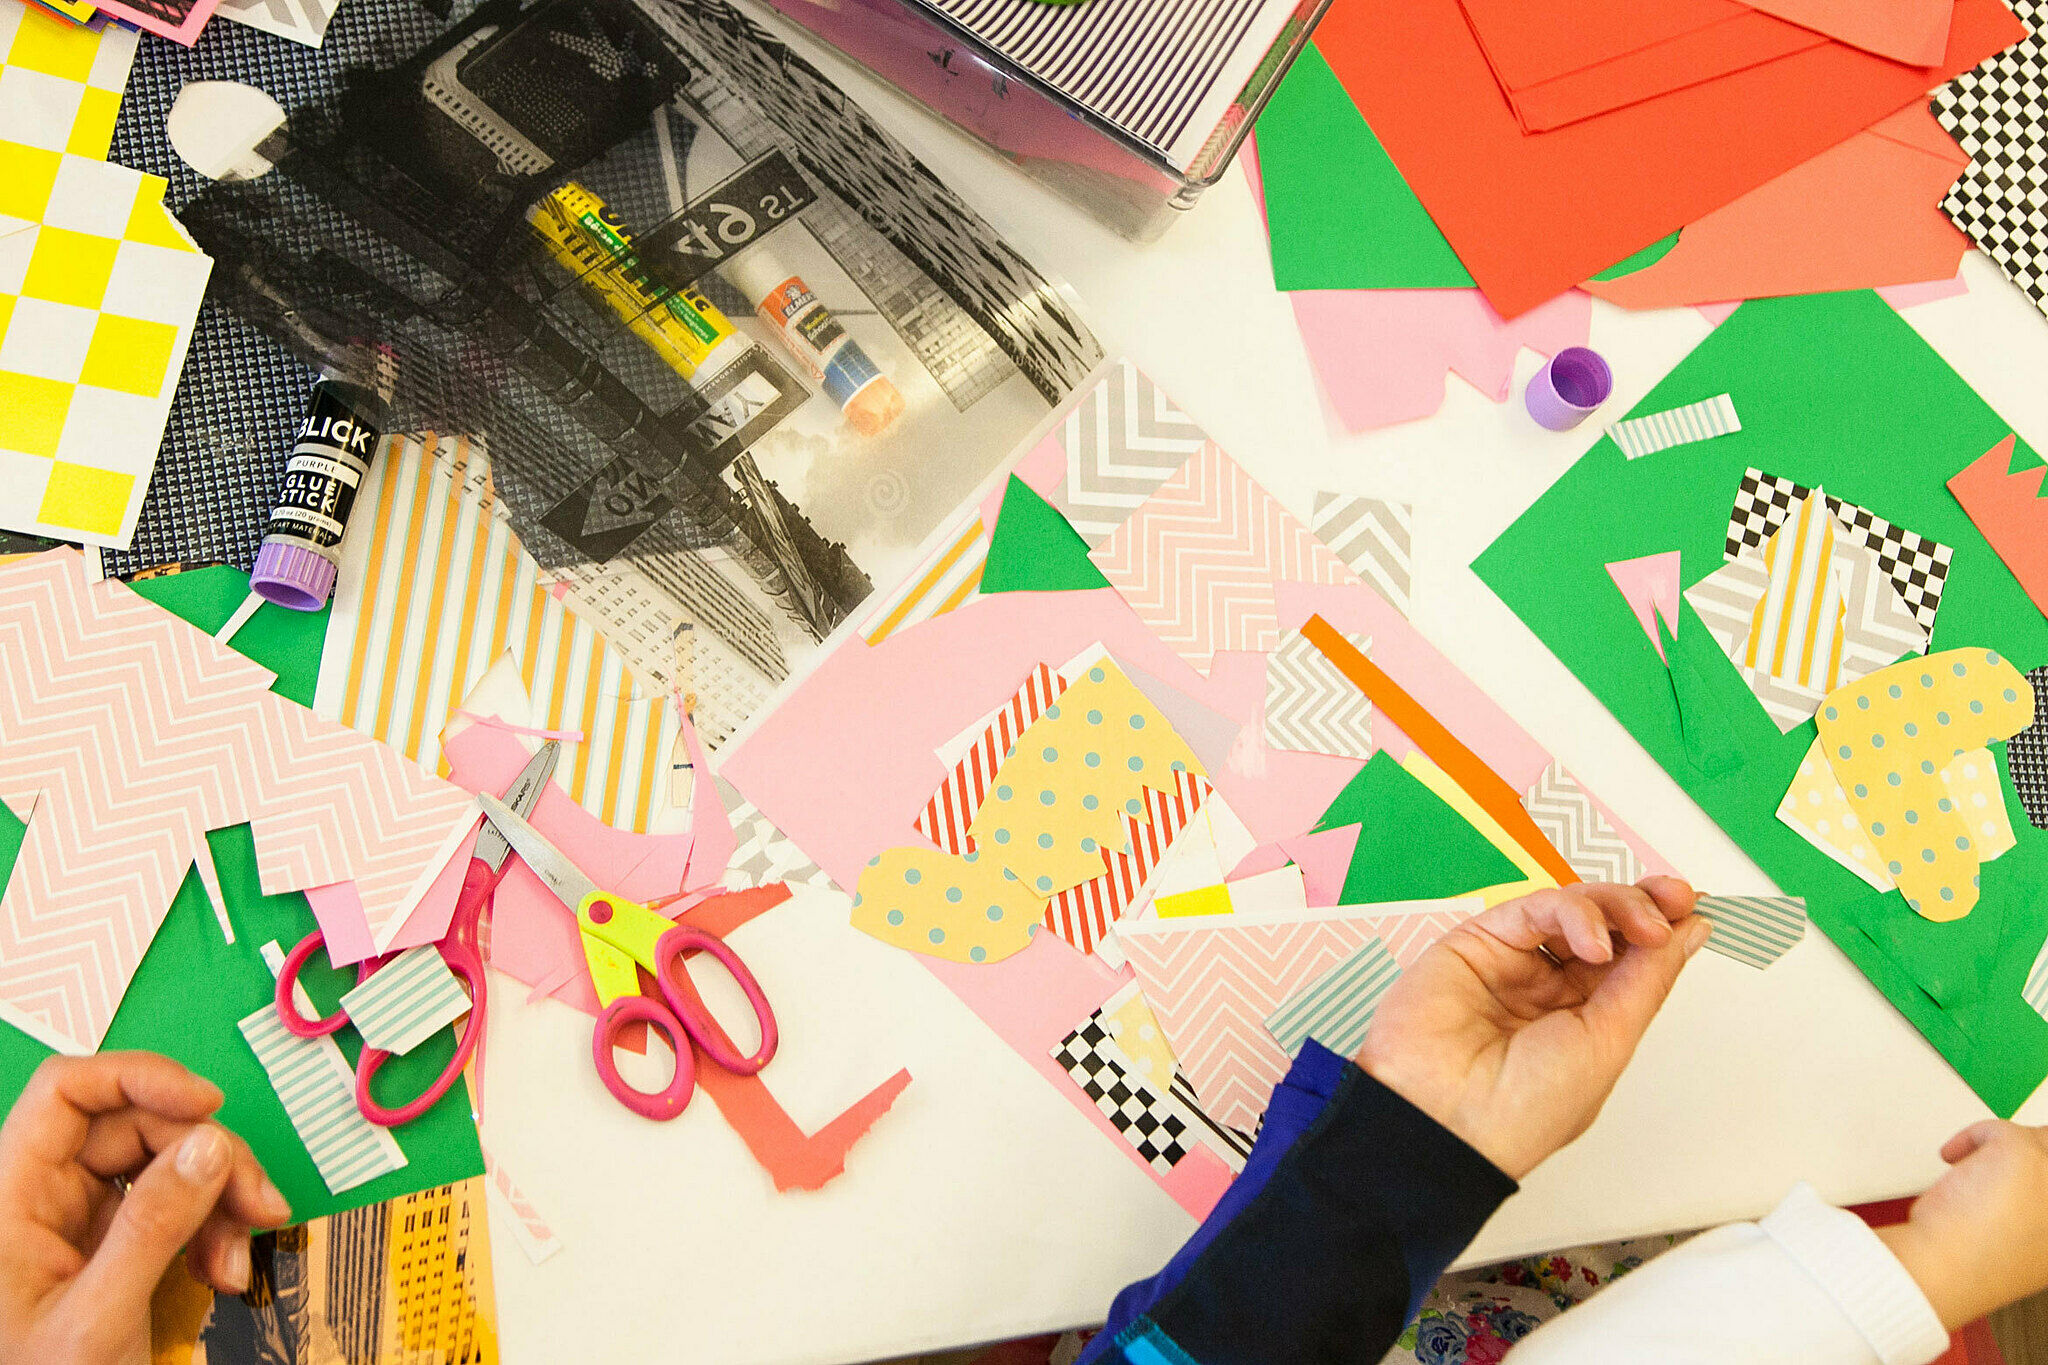 Kids use supplies to create artwork with paper